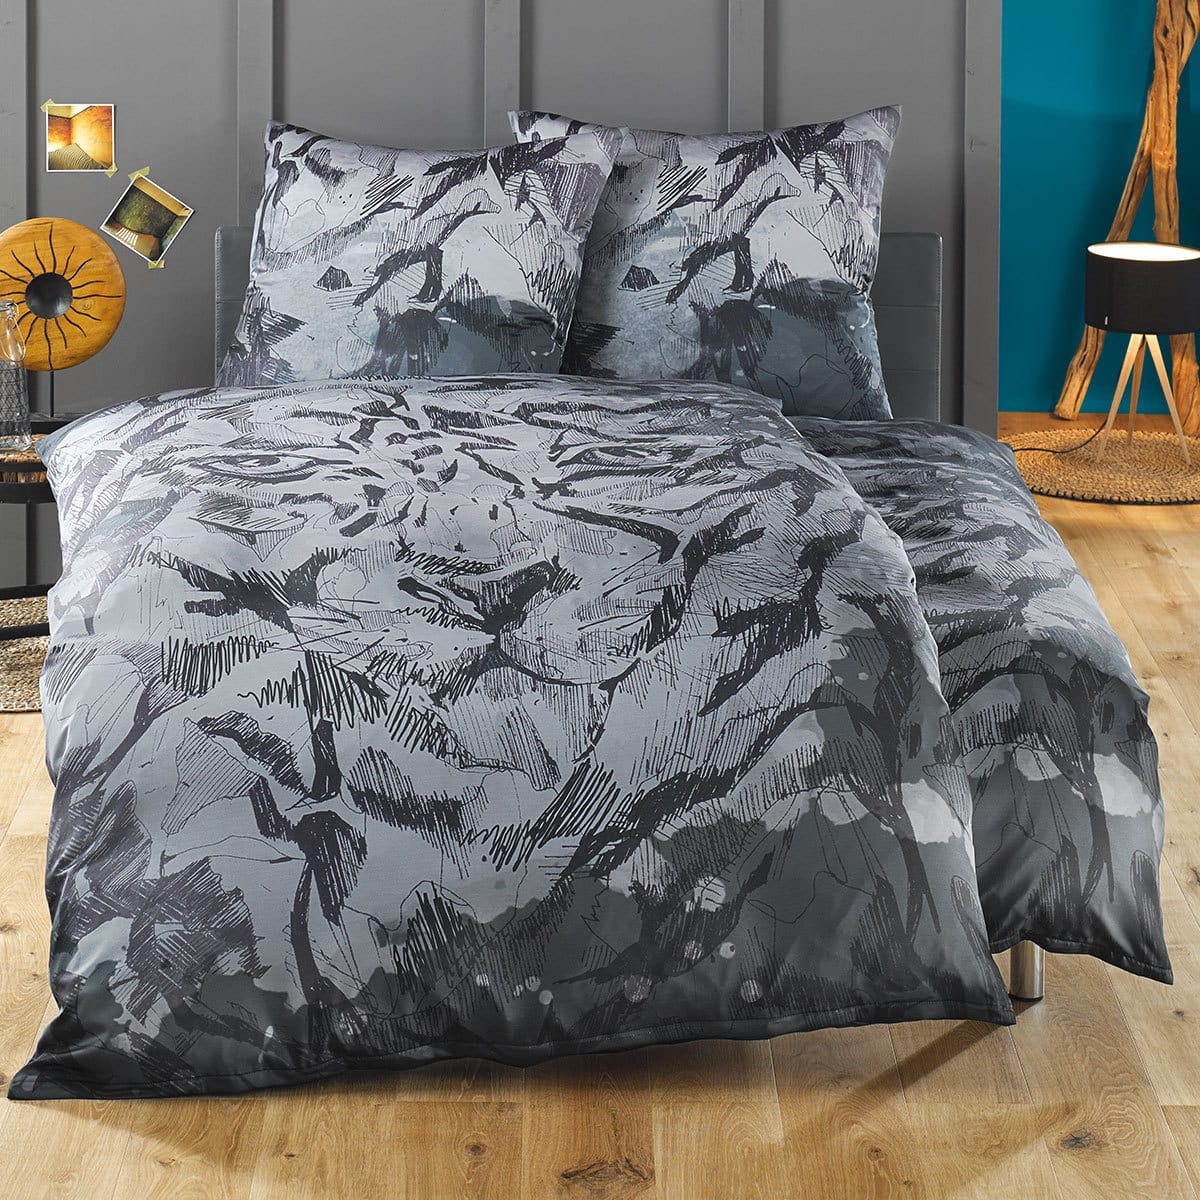 lorena mako satin bettw sche sheela anthrazit g nstig online kaufen bei bettwaren shop. Black Bedroom Furniture Sets. Home Design Ideas